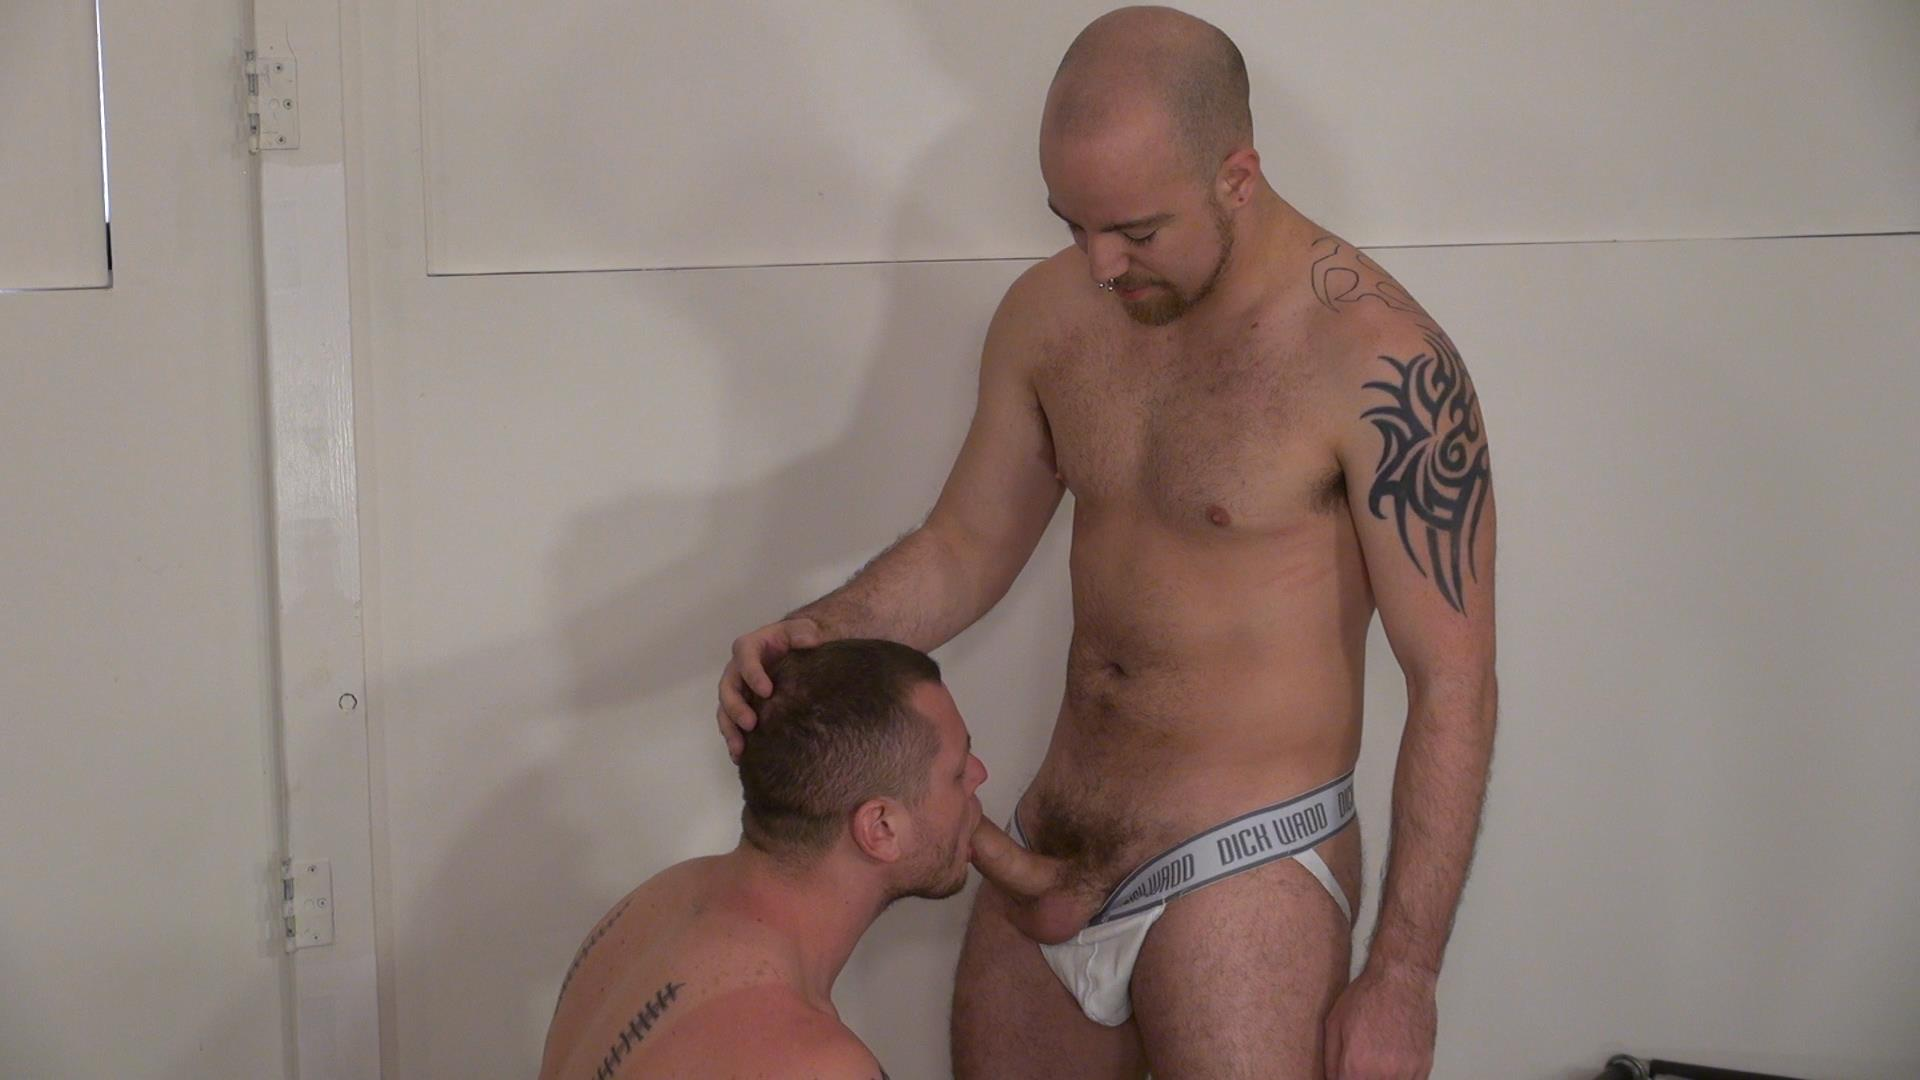 Raw-and-Rough-Lex-Antoine-Barebacking-Blue-Bailey-With-His-Big-Uncut-Cock-Amateur-Gay-Porn-08 Lex Antoine Barebacking Blue Bailey With His Big Uncut Cock